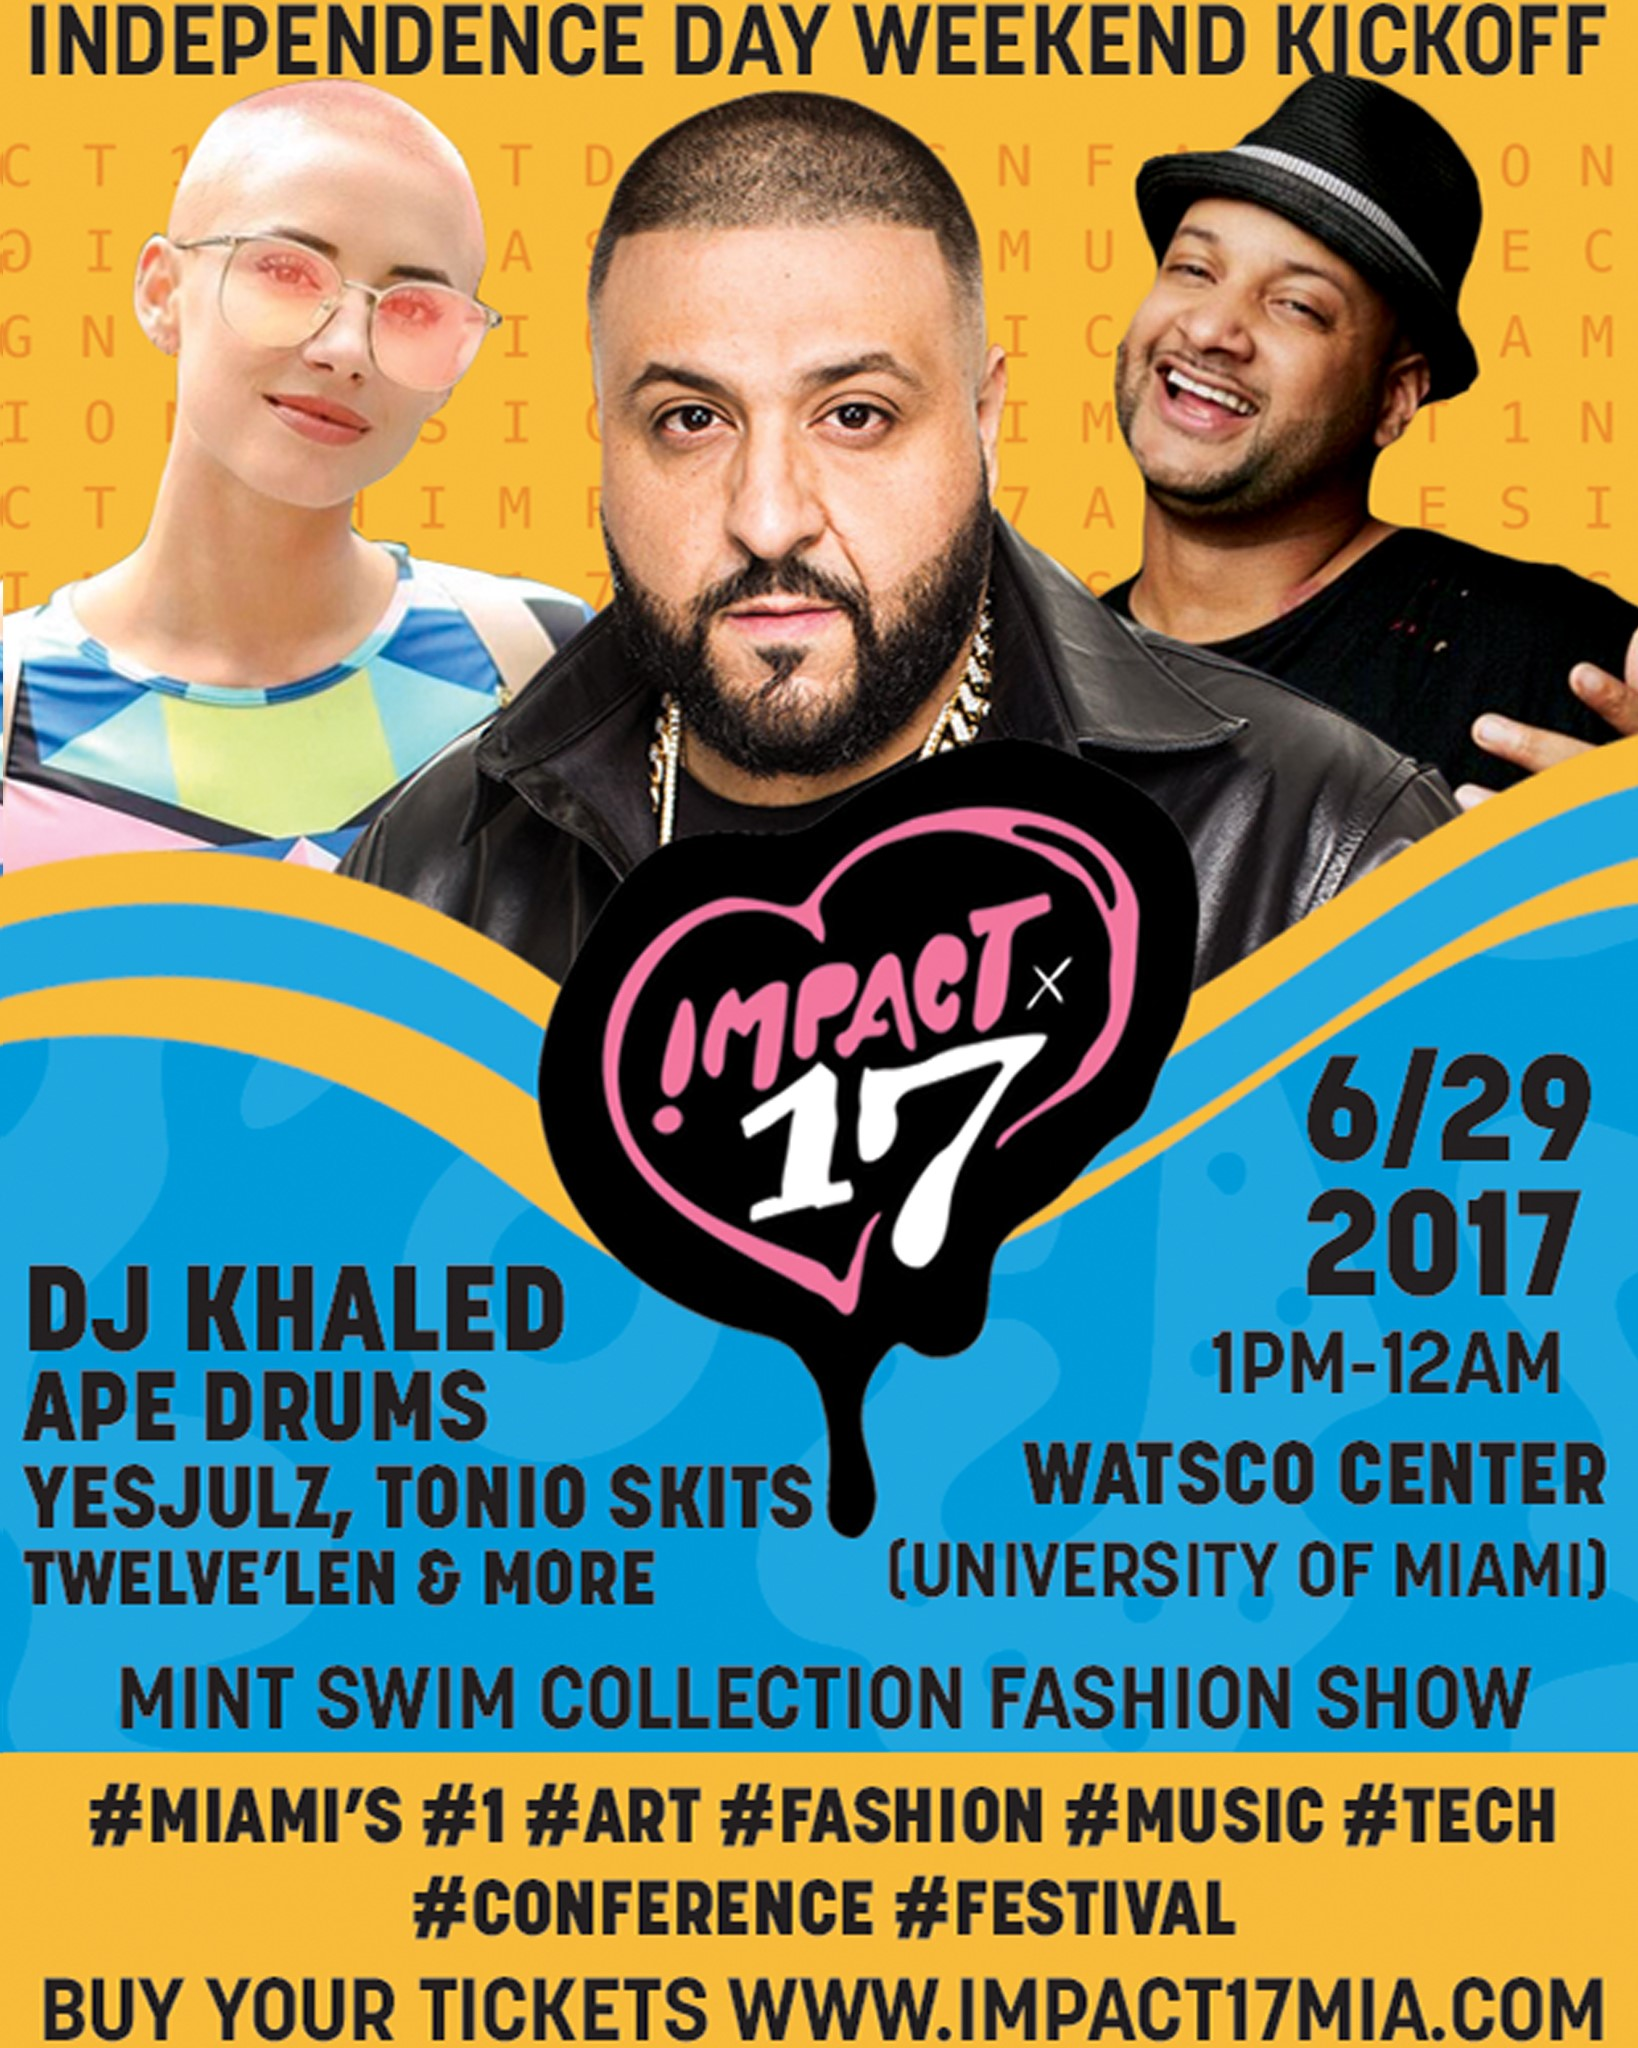 DJ Khaled to Headline First Annual Music, Tech, Fashion & Art Conference, YesJulz and Tonio Skits to Co-Host IMPACT '17 Event